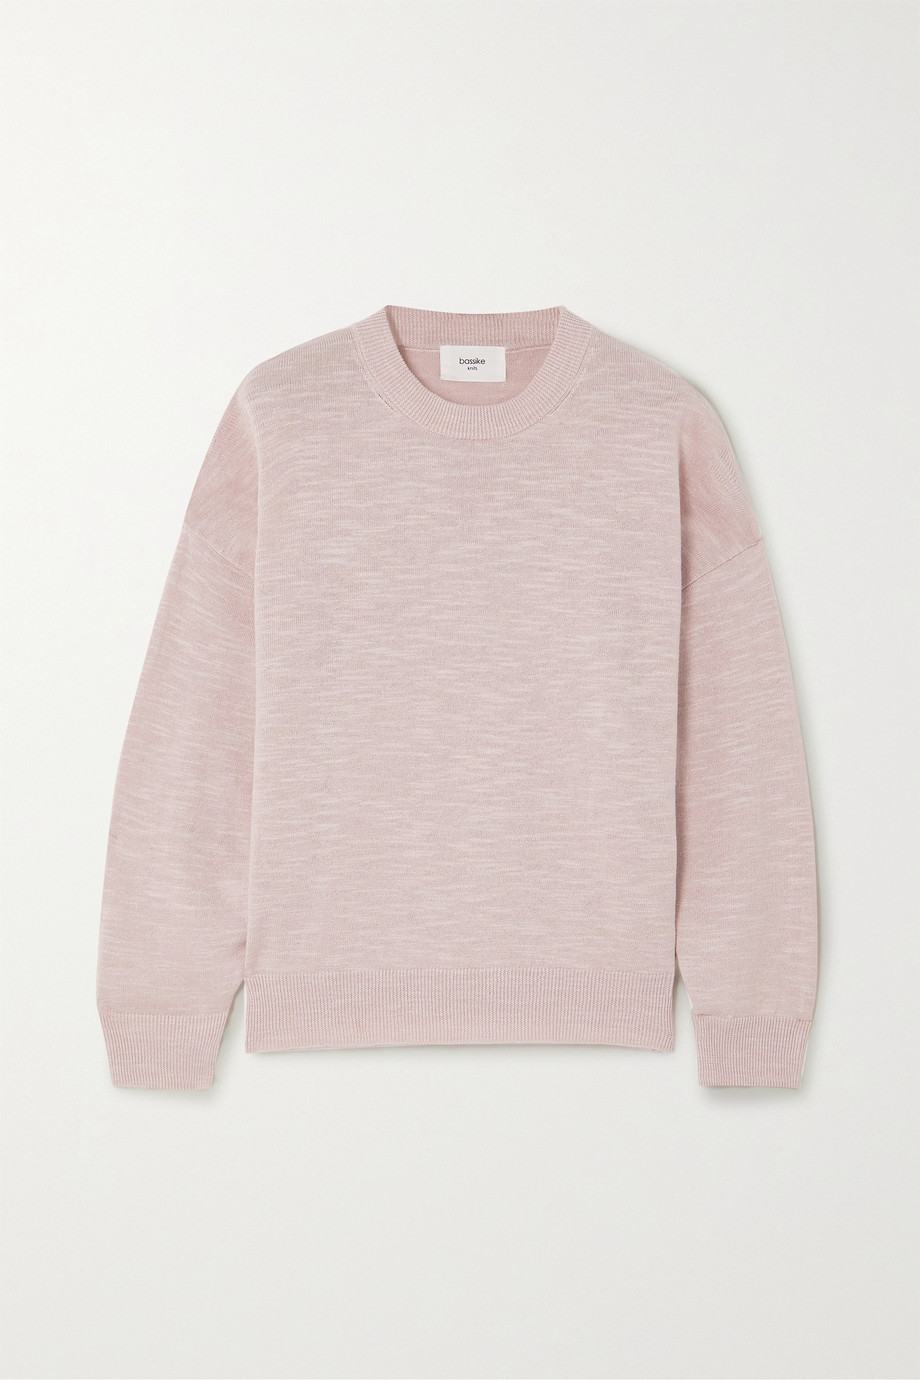 Bassike Linen and cotton-blend sweater